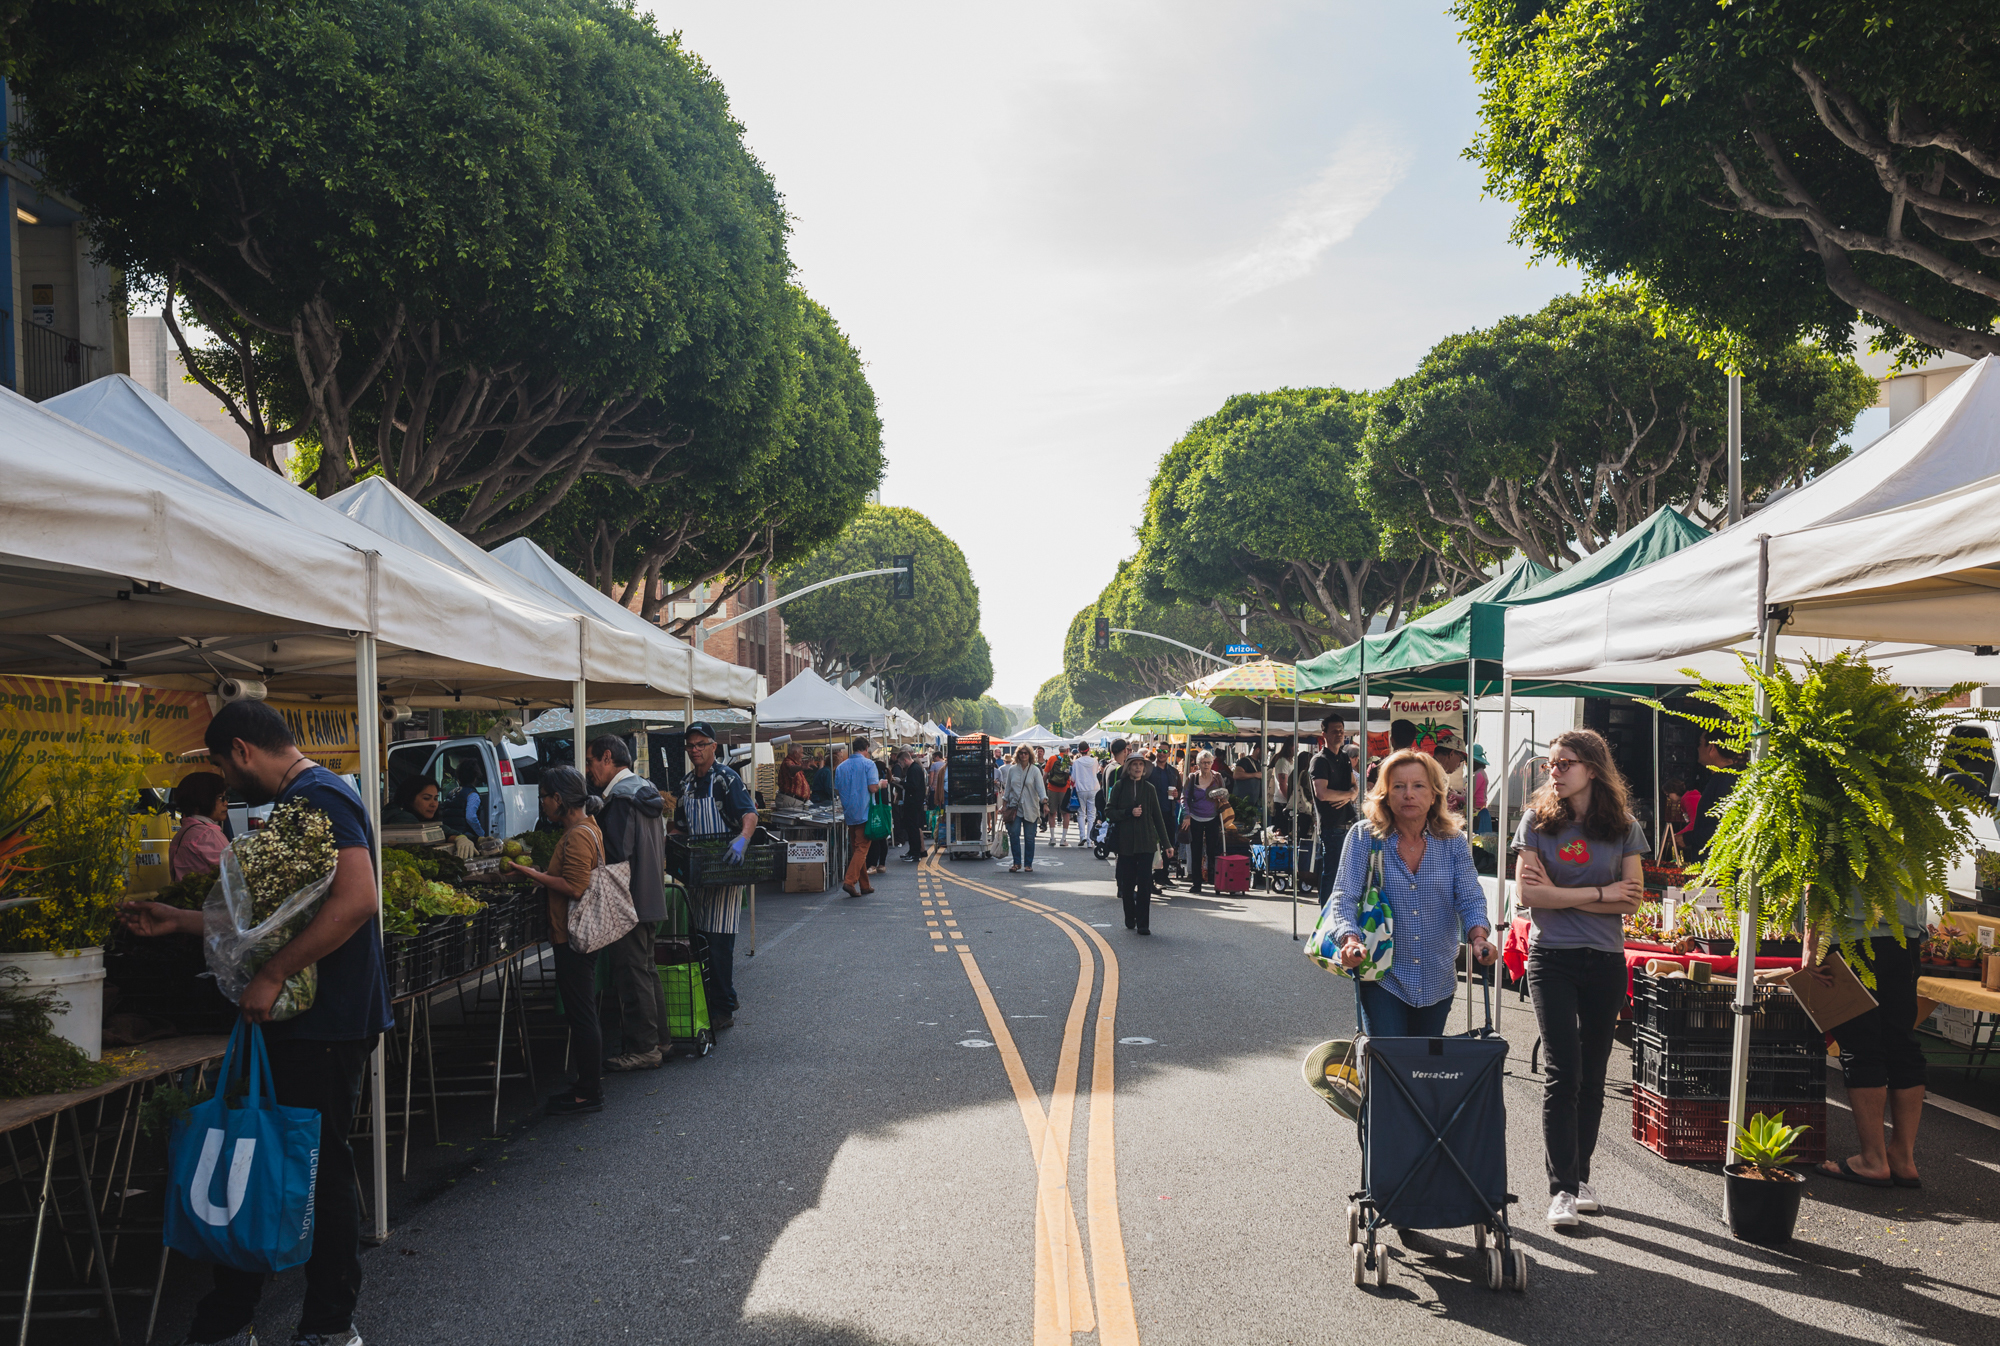 Chefs and home cooks alike flock to the Wednesday Santa Monica Farmers Market. This is where Jeremy Fox finds ingredients like salsify flowers and parts of vegetables often overlooked or discarded by other cooks.